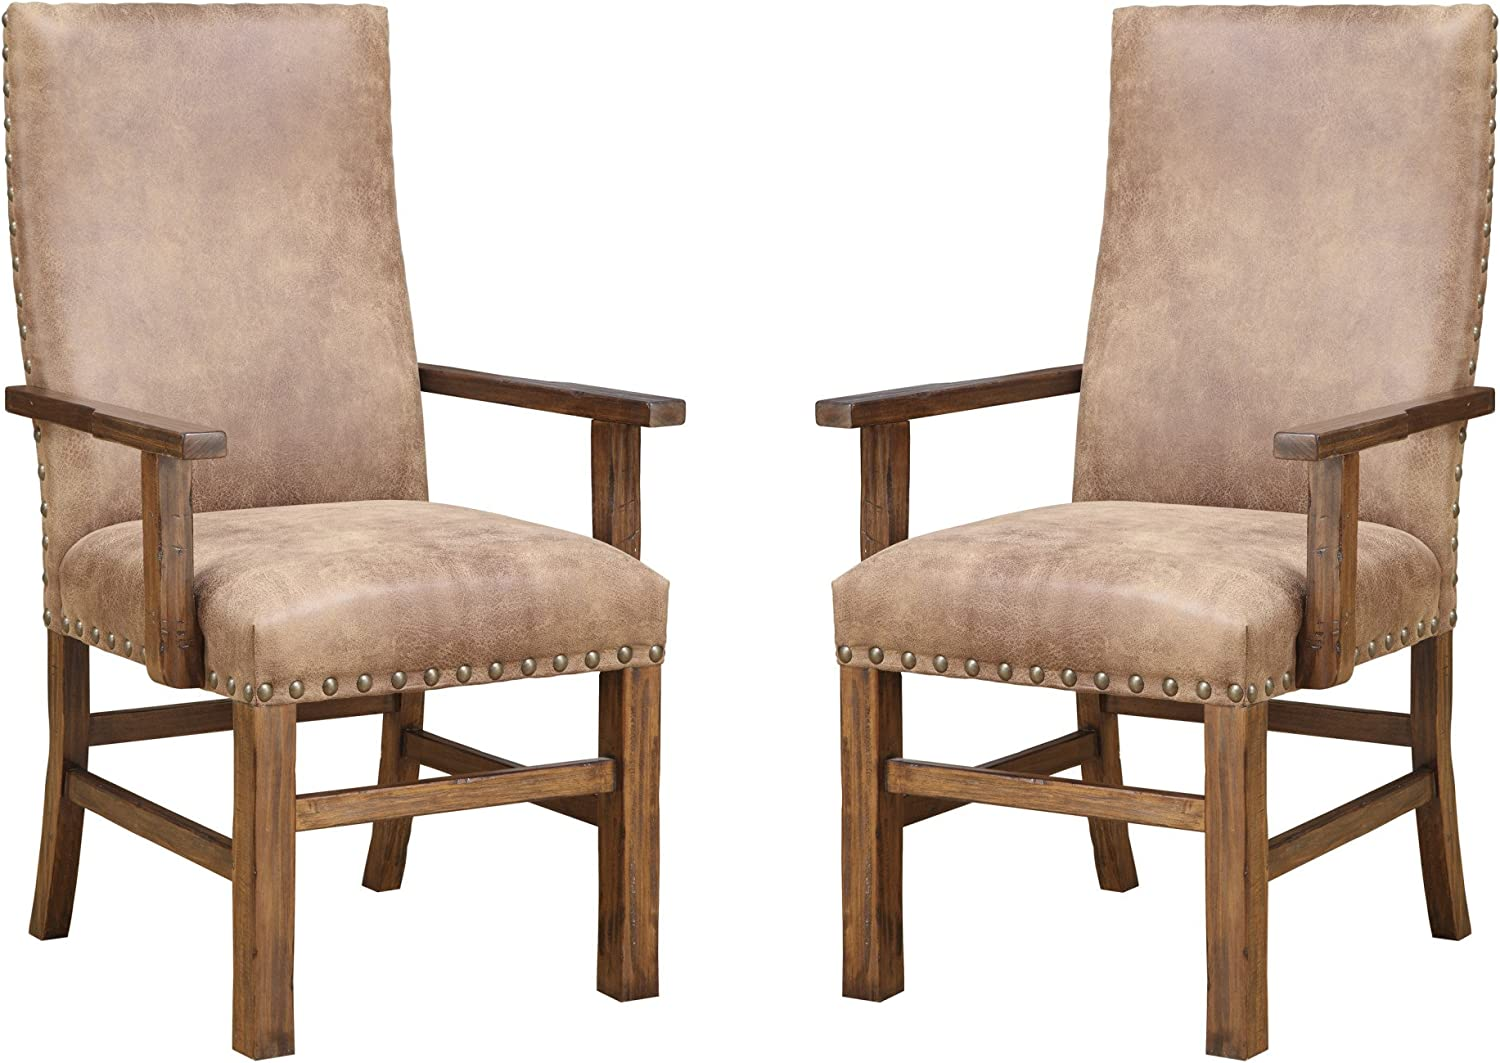 Emerald Home Chambers Creek Brown Upholstered Dining Chair with Arms And Nailhead Trim, Set of Two